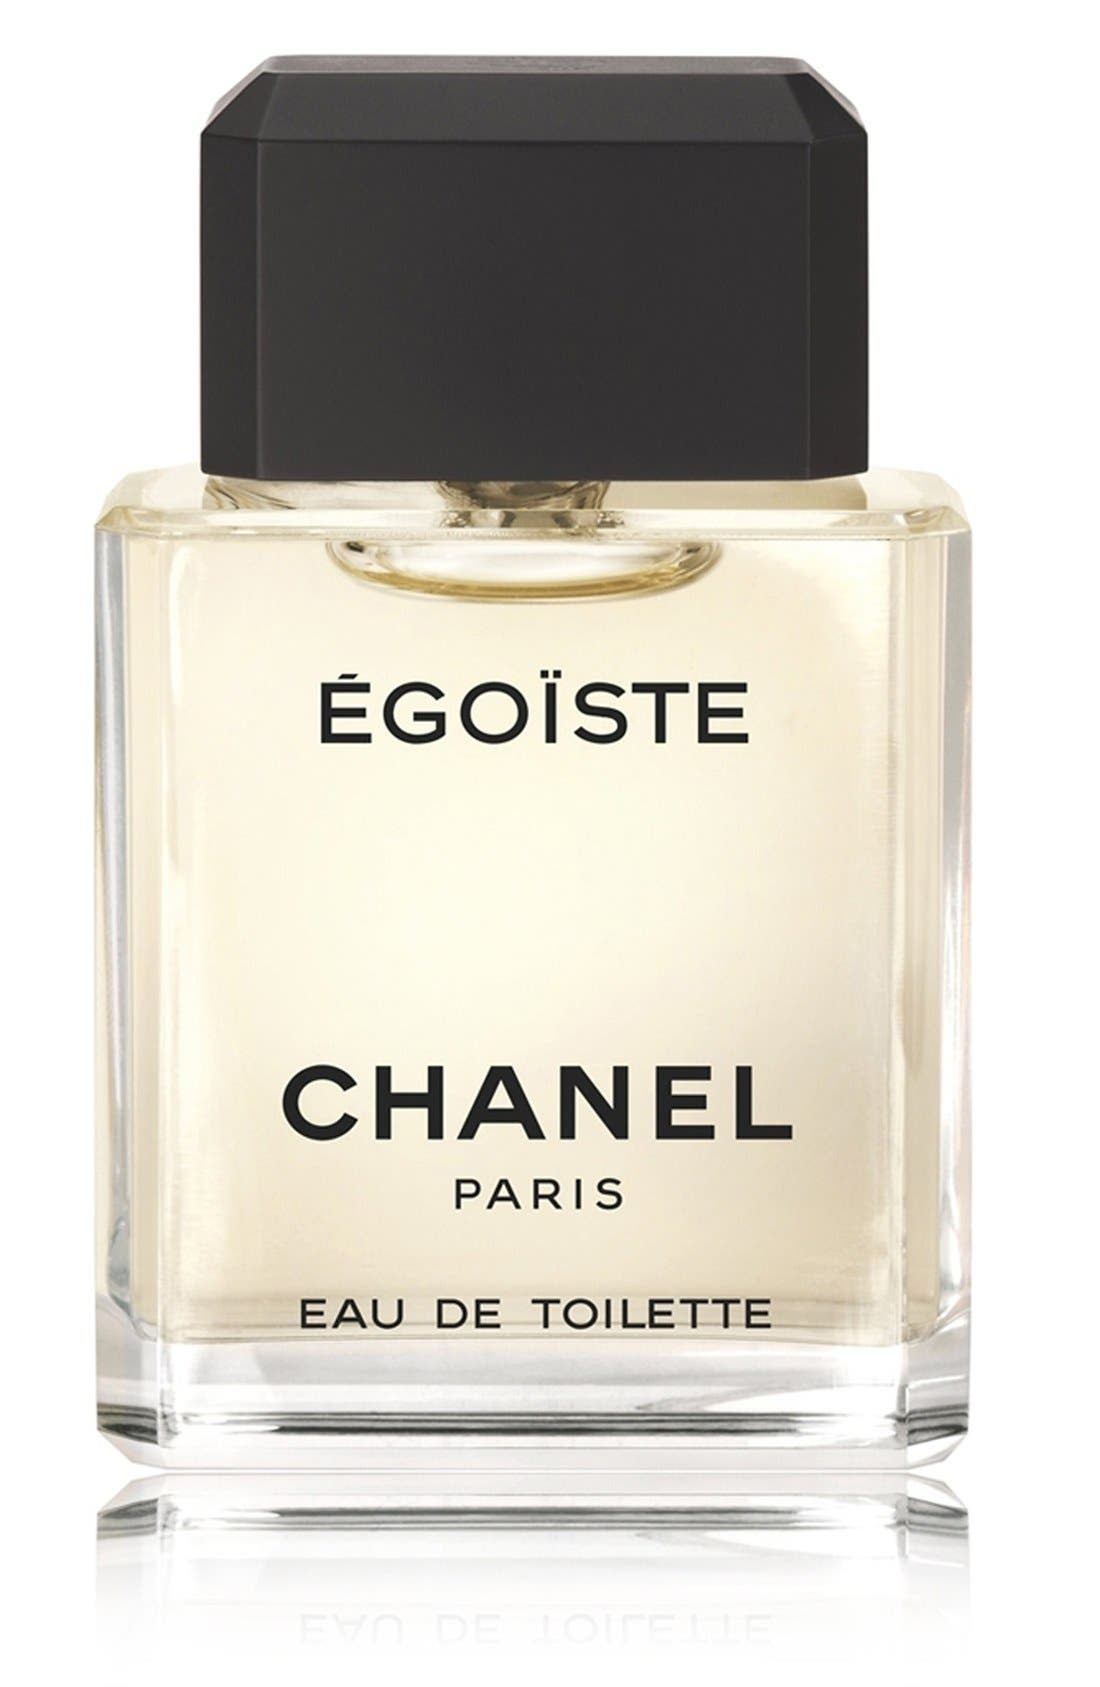 CHANEL ÉGOÏSTE 